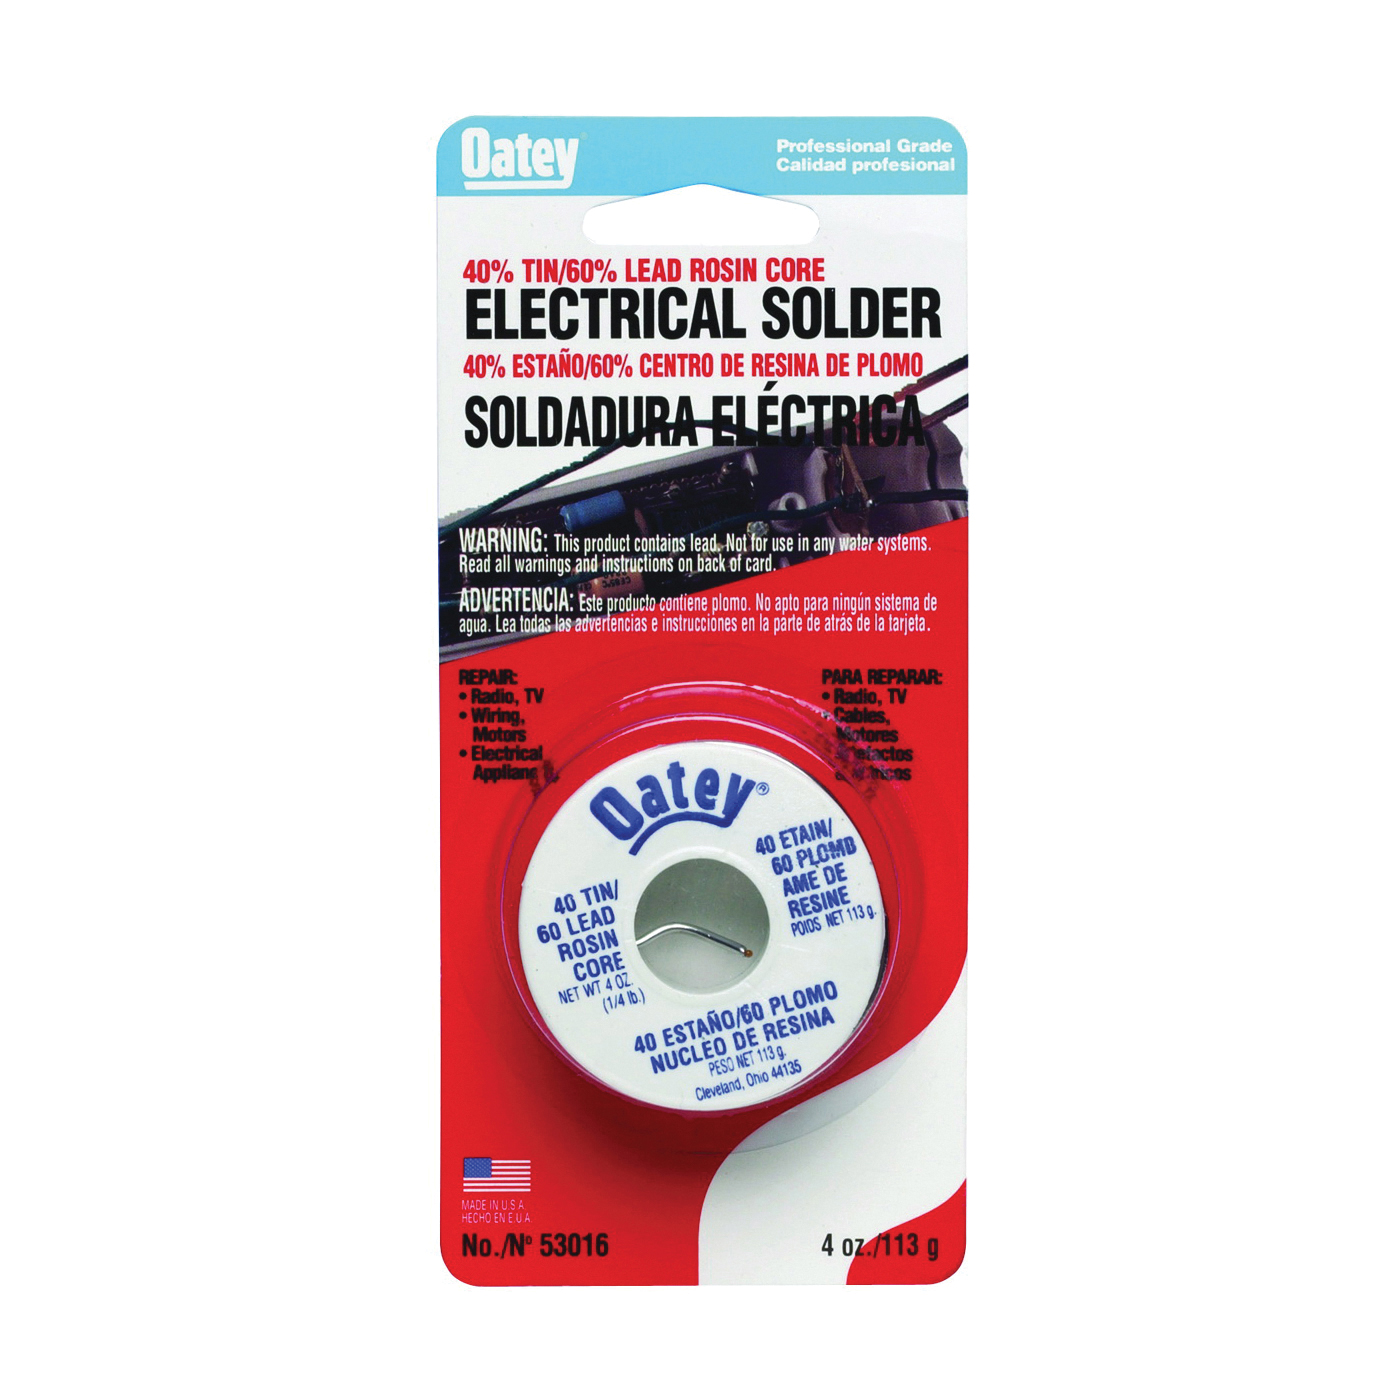 Picture of Oatey 53016 Rosin Core Solder, 1/4 lb Package, Carded, Solid, Silver, 361 to 460 deg F Melting Point